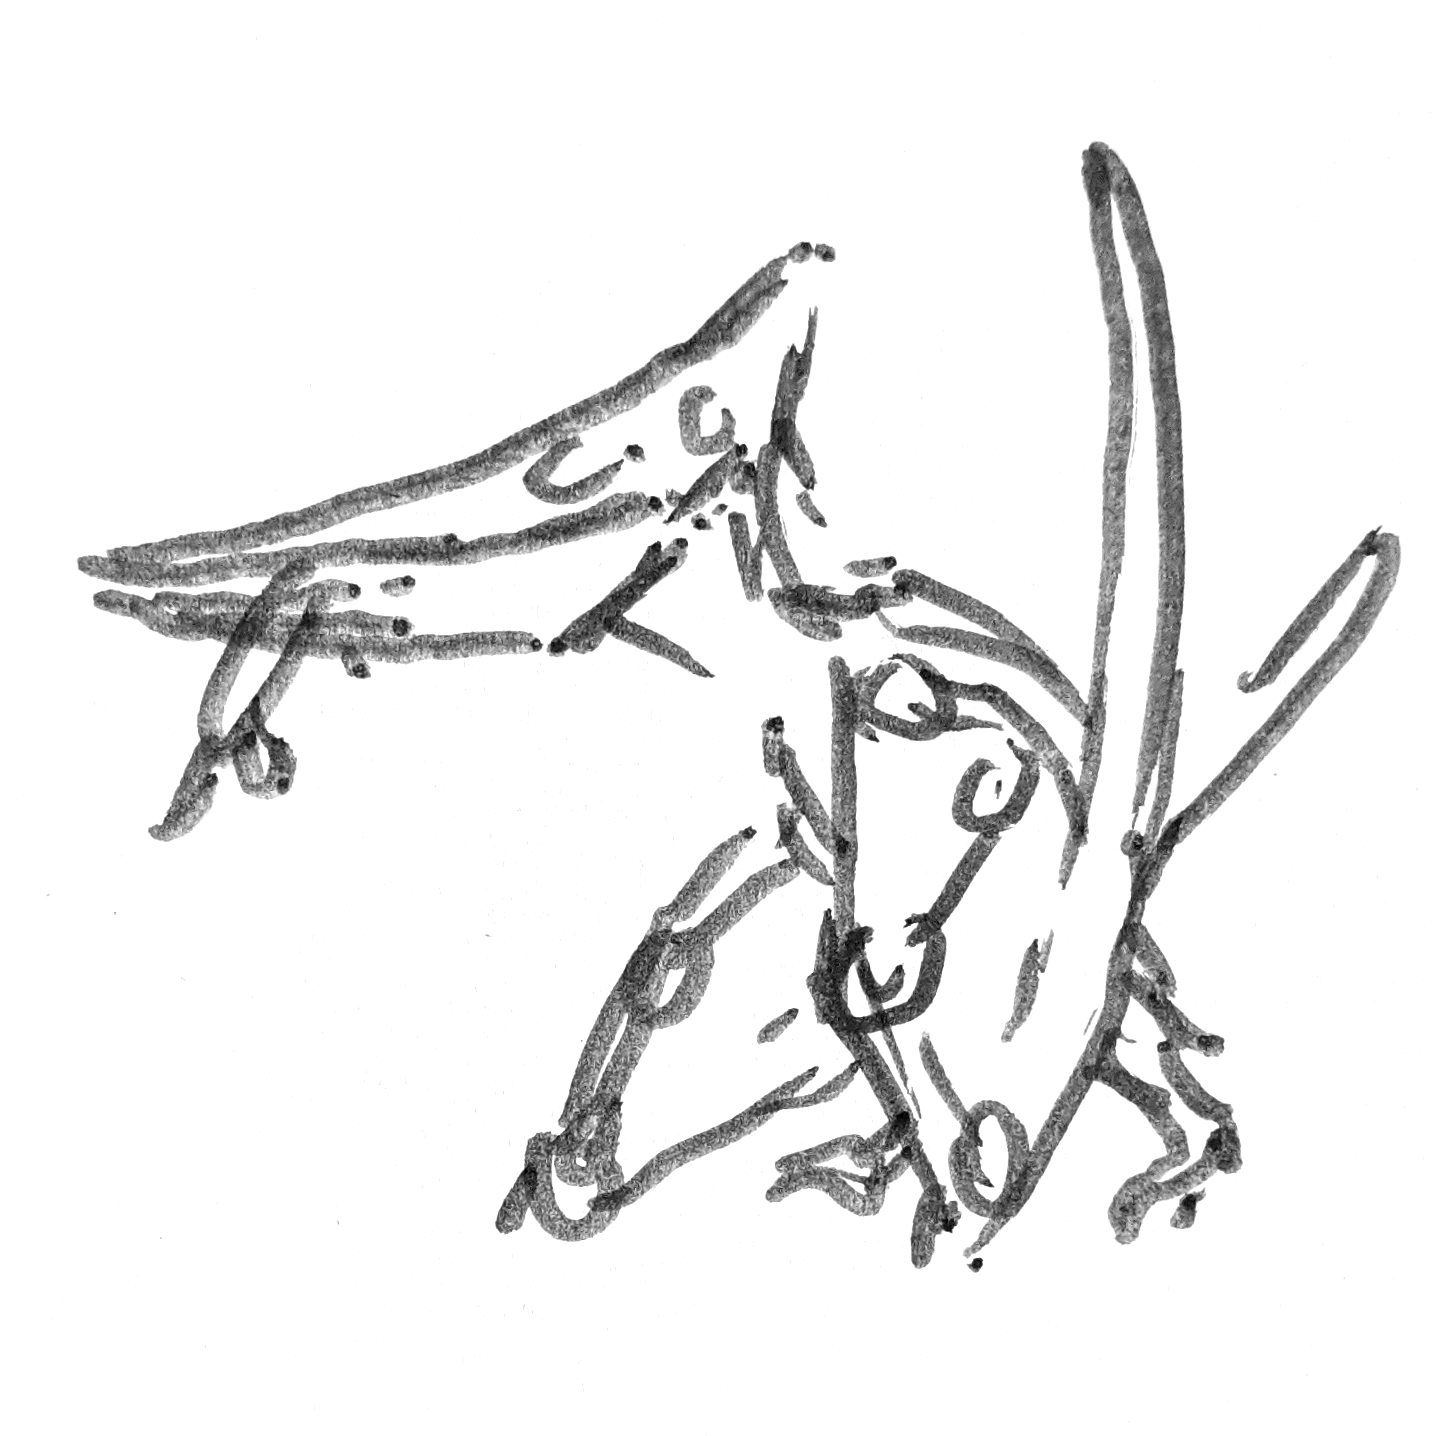 Pteranodon drawing holding a fish in their mouth